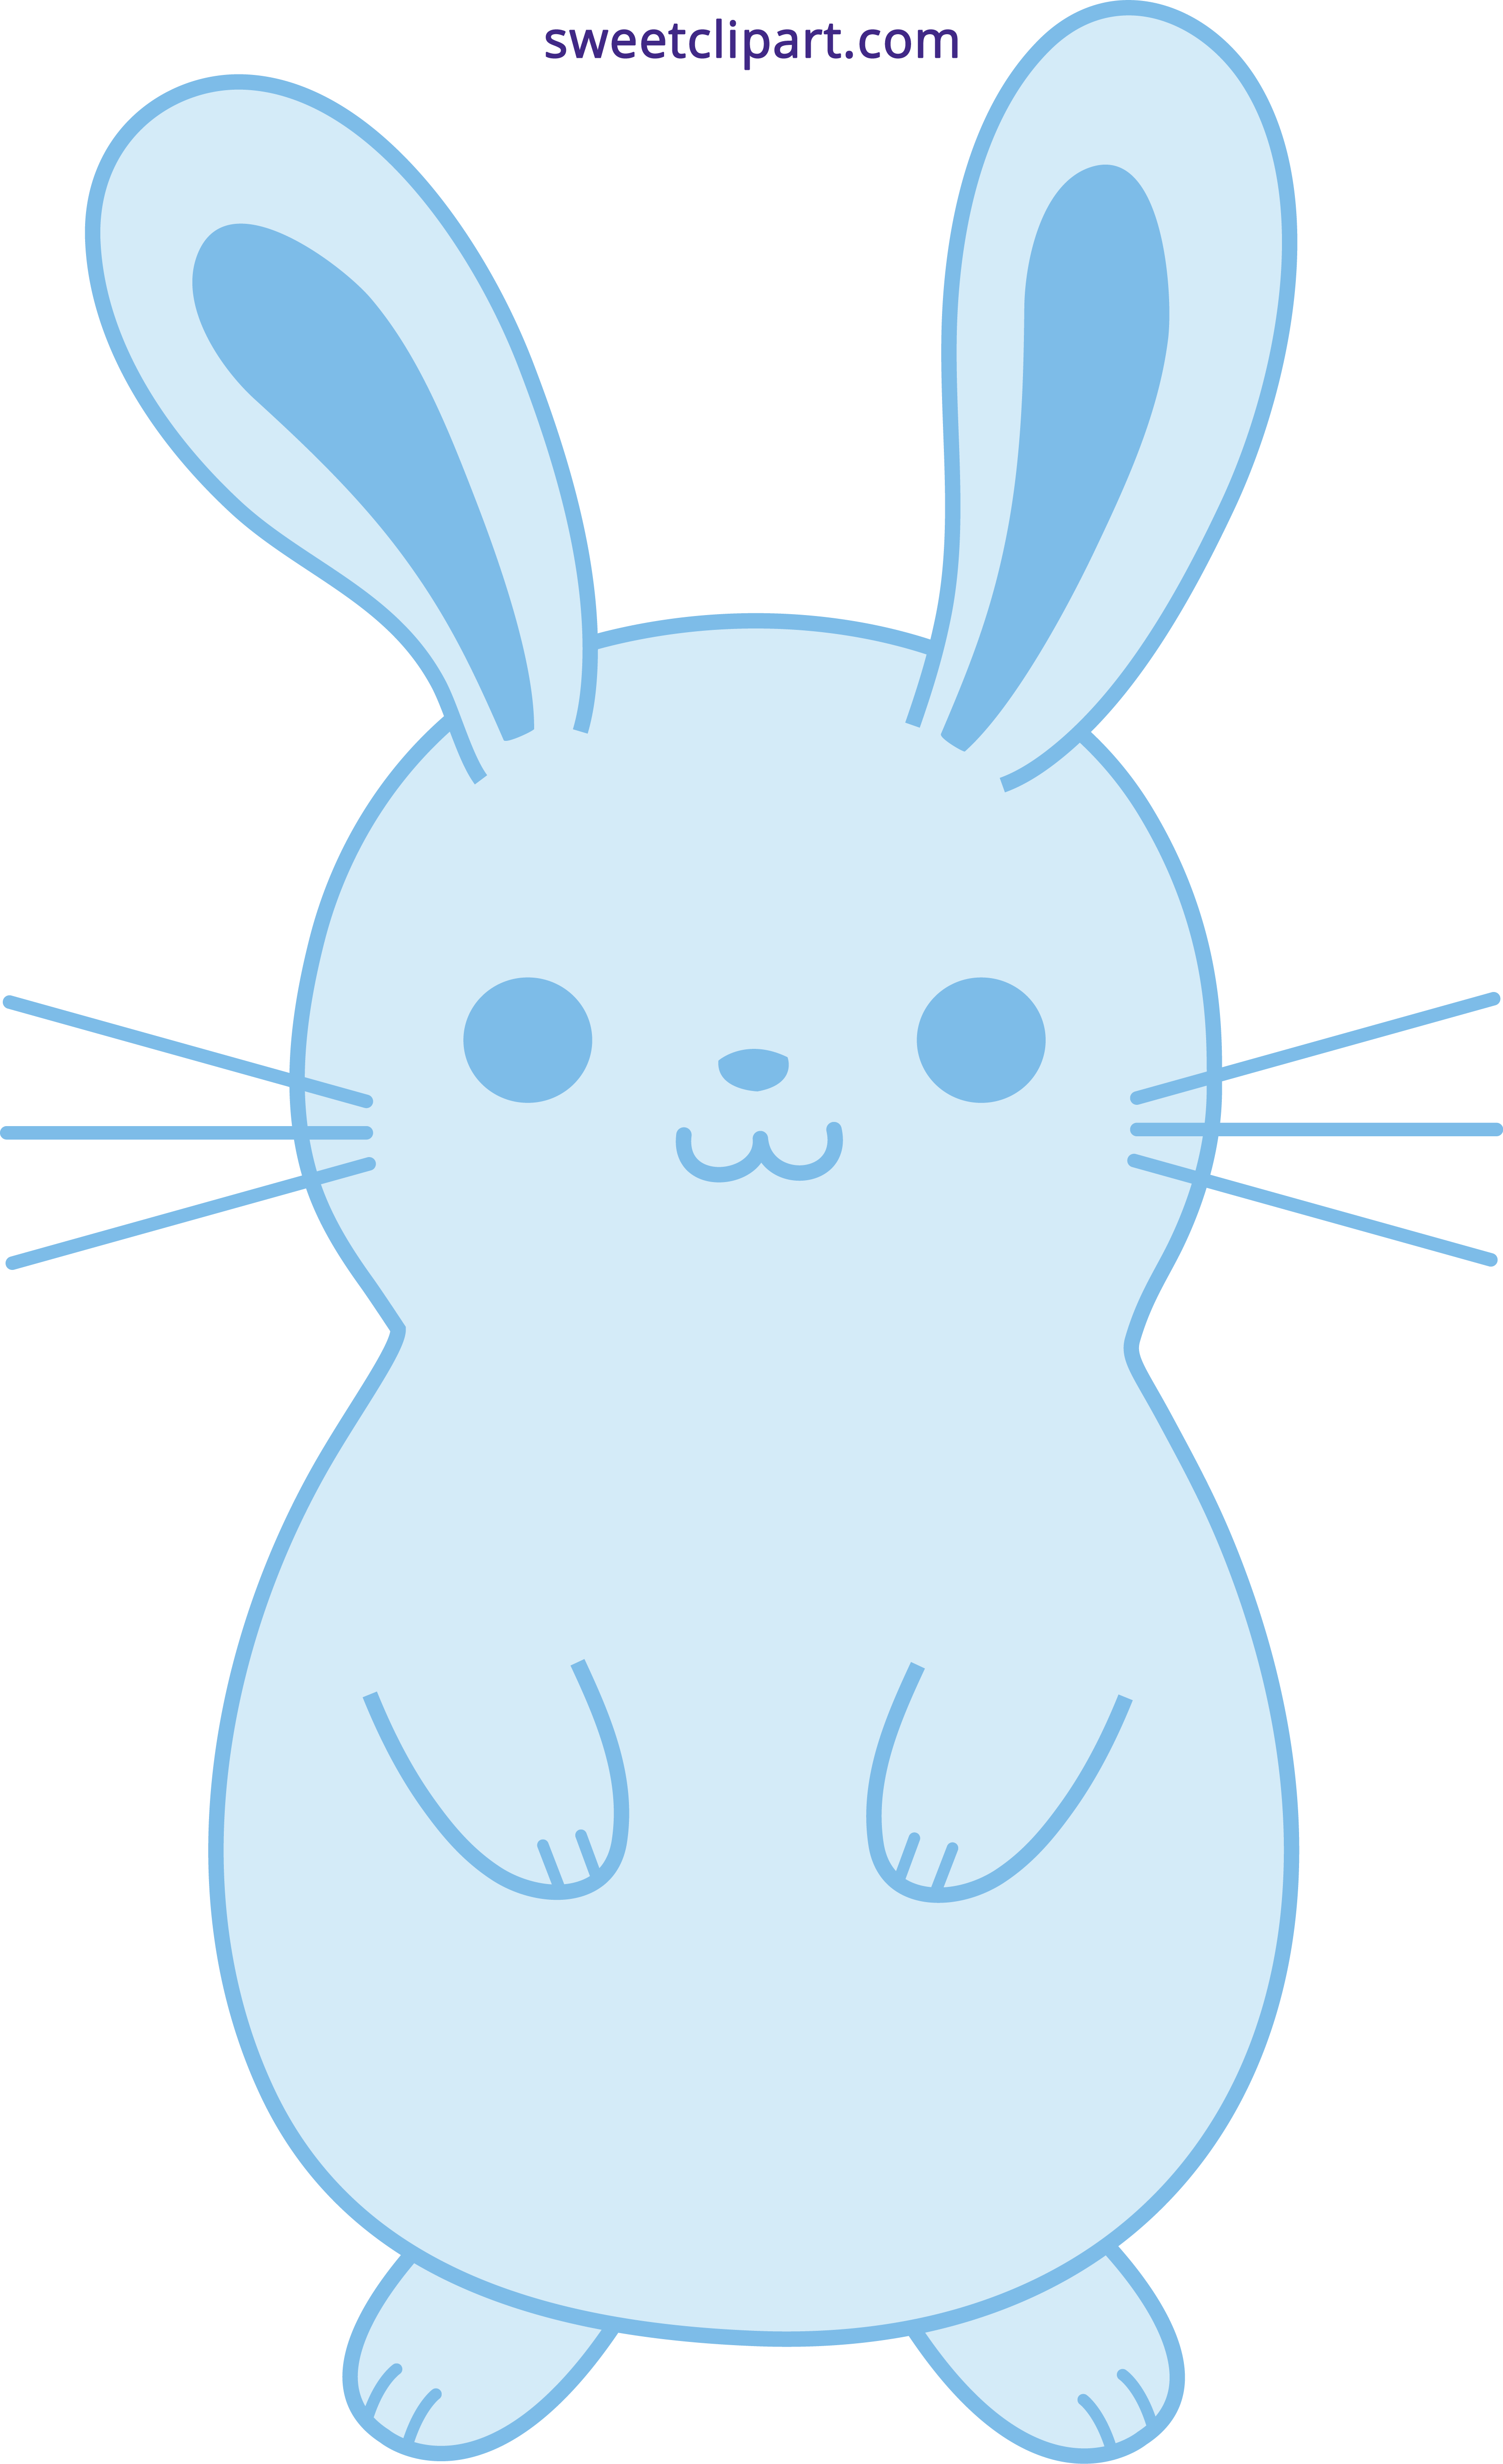 Rabbit with an apple clipart clipart black and white Cute Blue Easter Bunny Rabbit Clipart - Sweet Clip Art clipart black and white